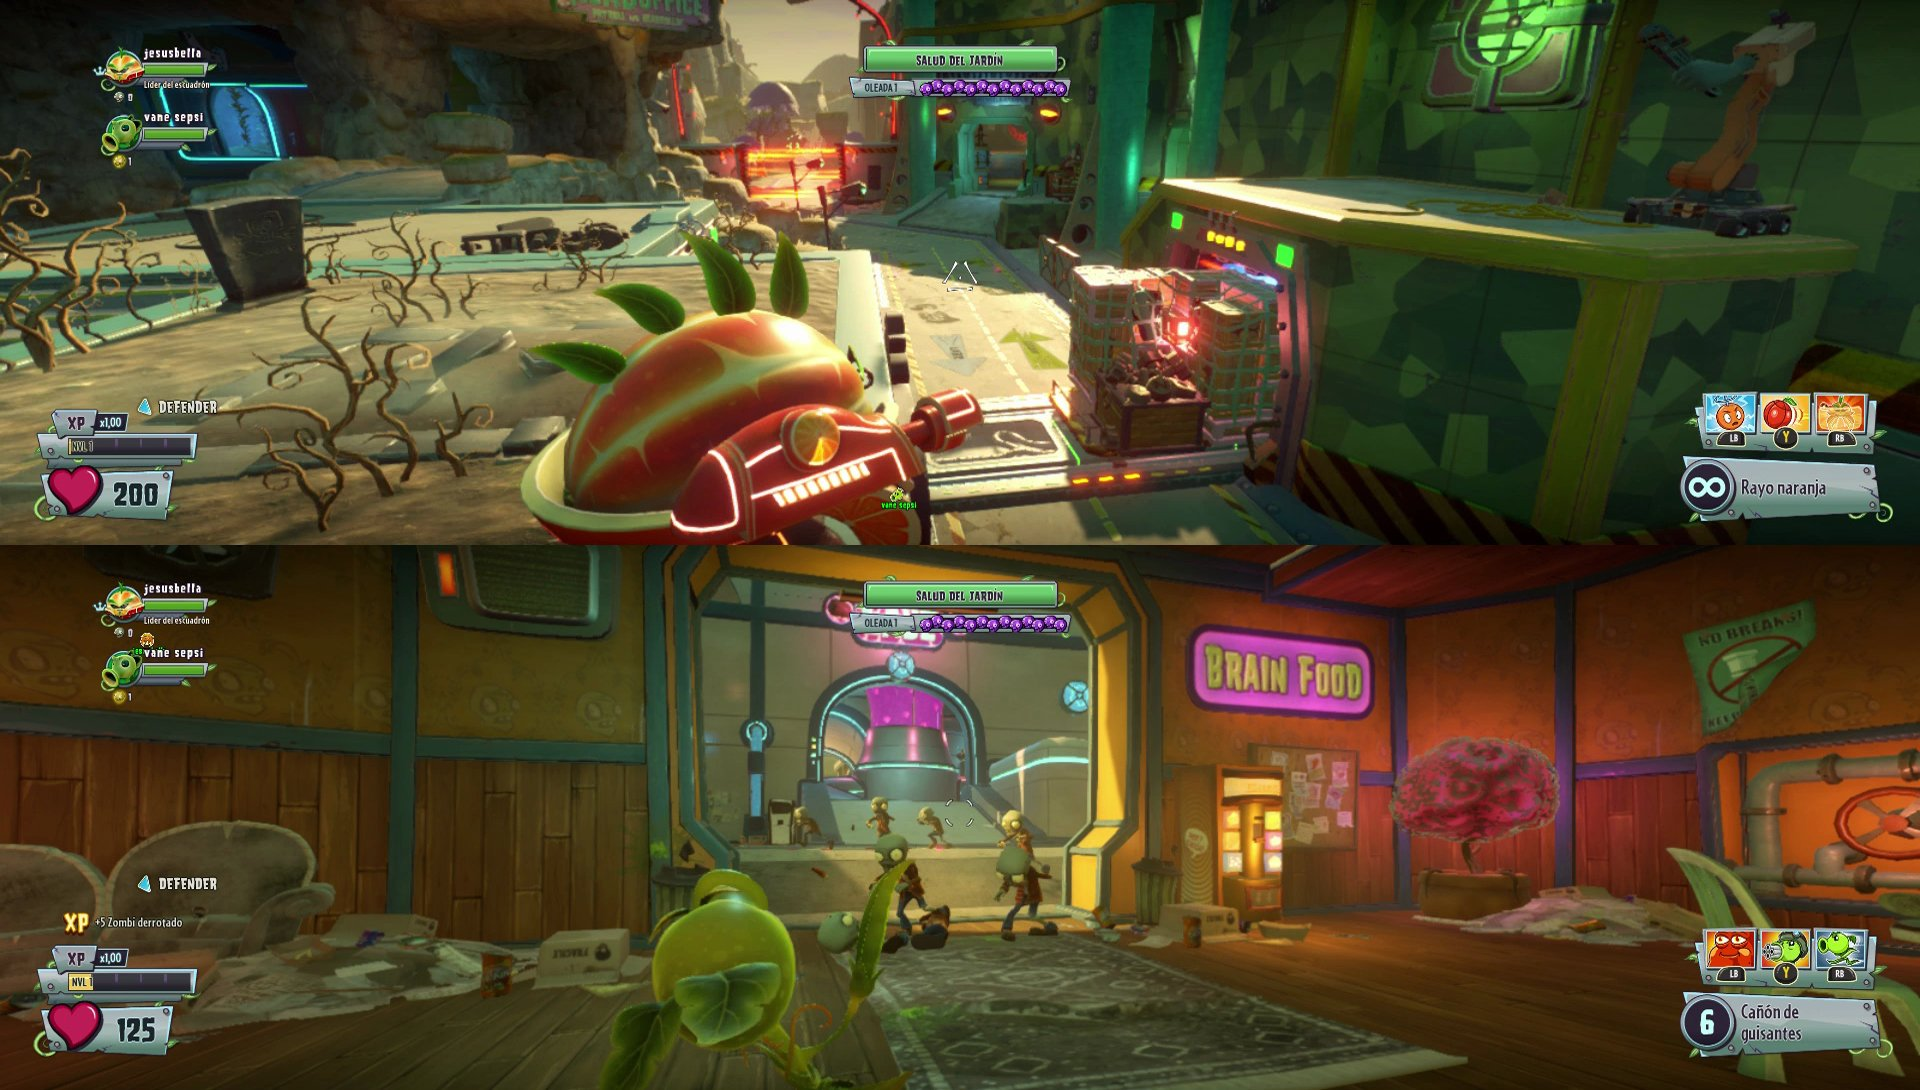 Analisis De Plants Vs Zombies Garden Warfare 2 Para Ps4 3djuegos